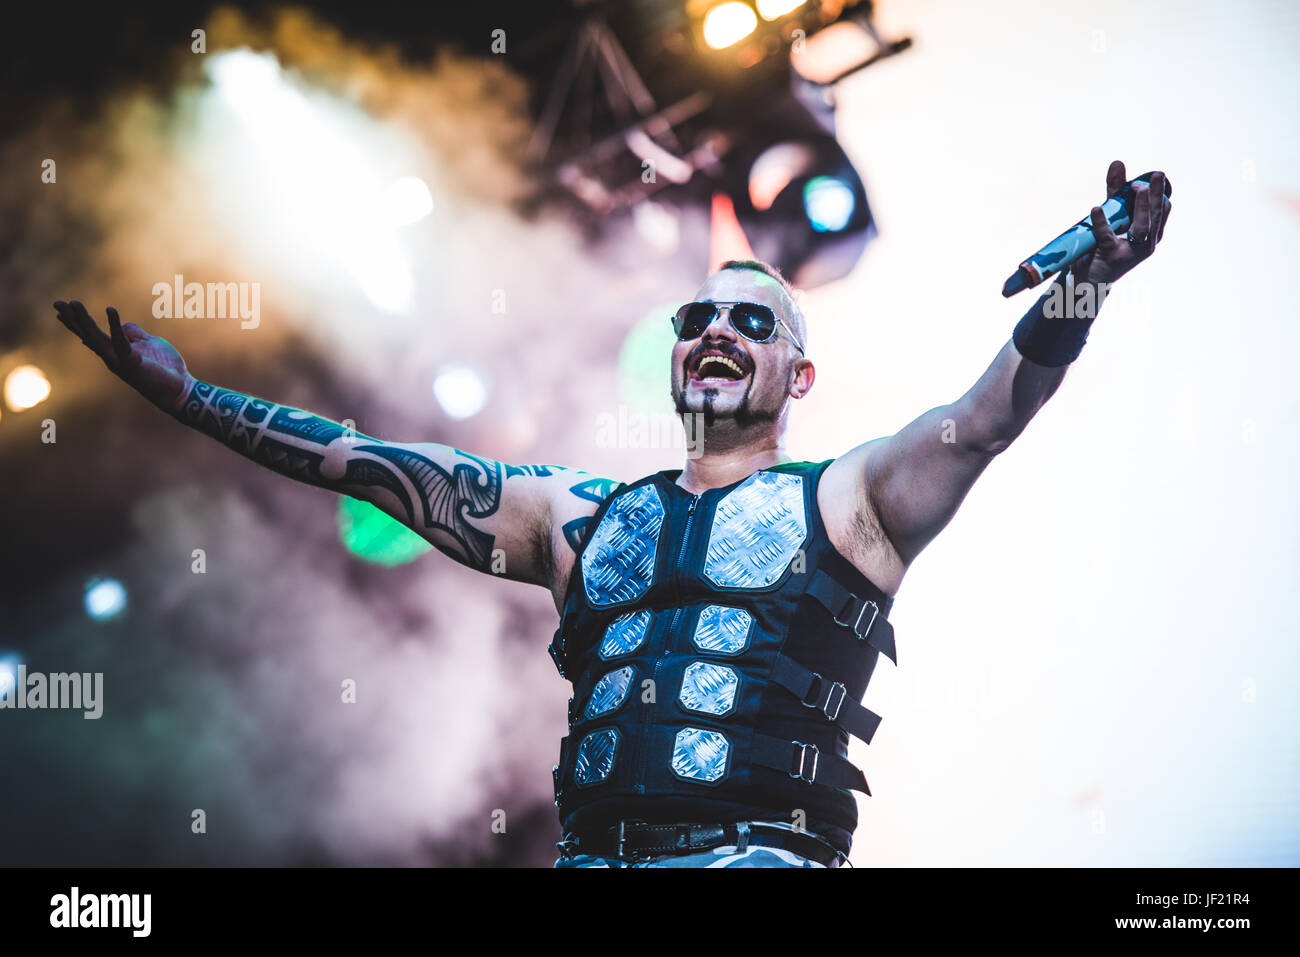 June 16, 2017: Sabaton performing live at the Hellfest Festival 2017 in Clisson, near Nantes Photo: Alessandro Bosio Stock Photo